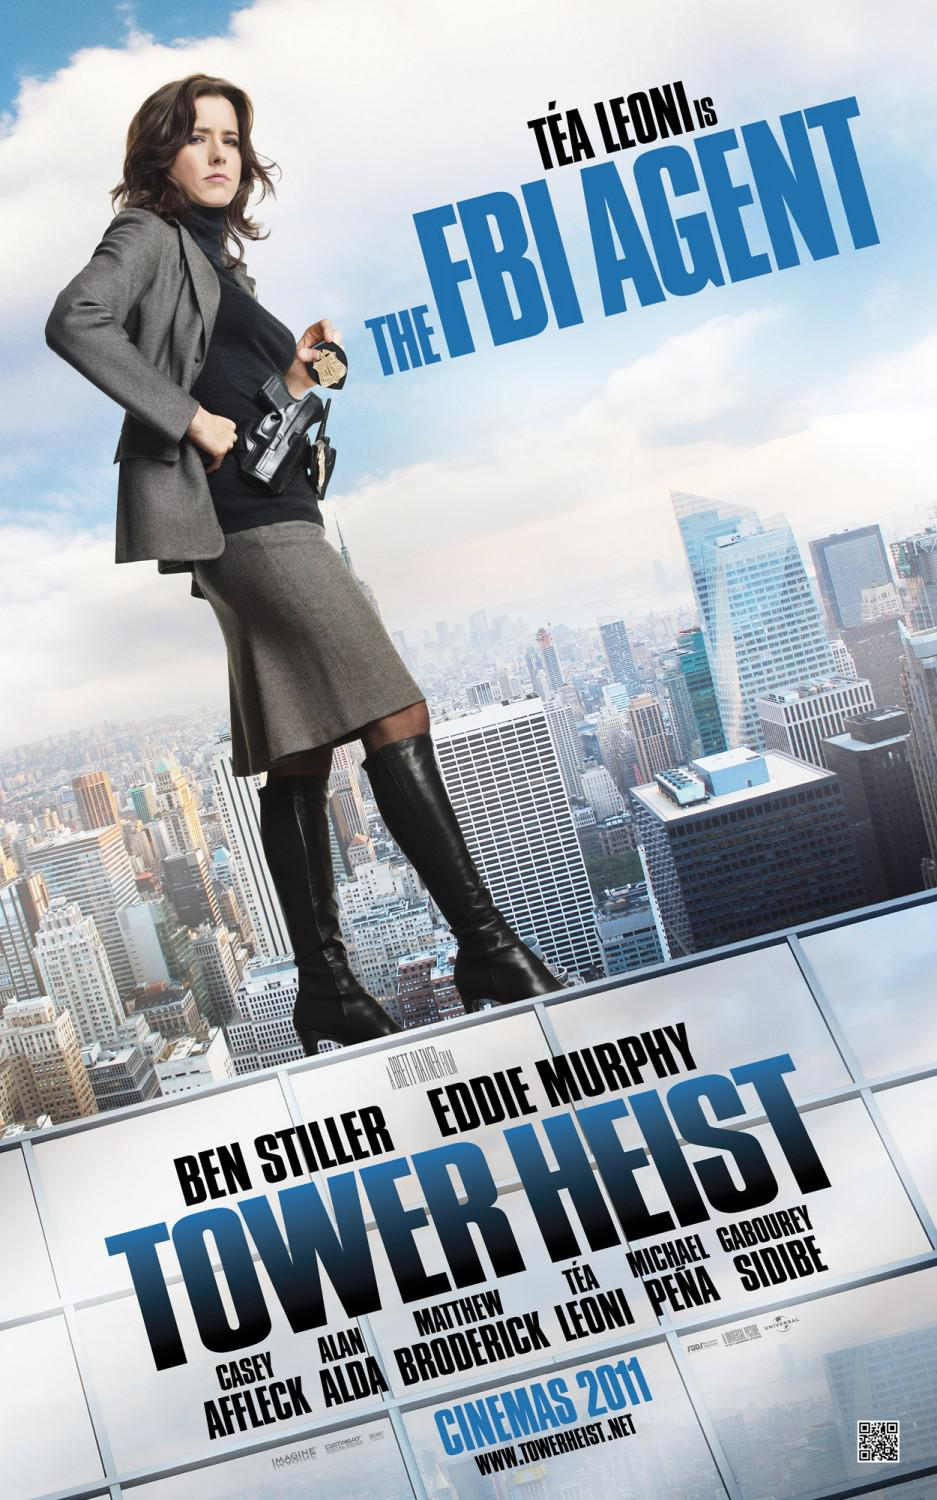 Tower heist - Téa Leoni - the FBI Agent